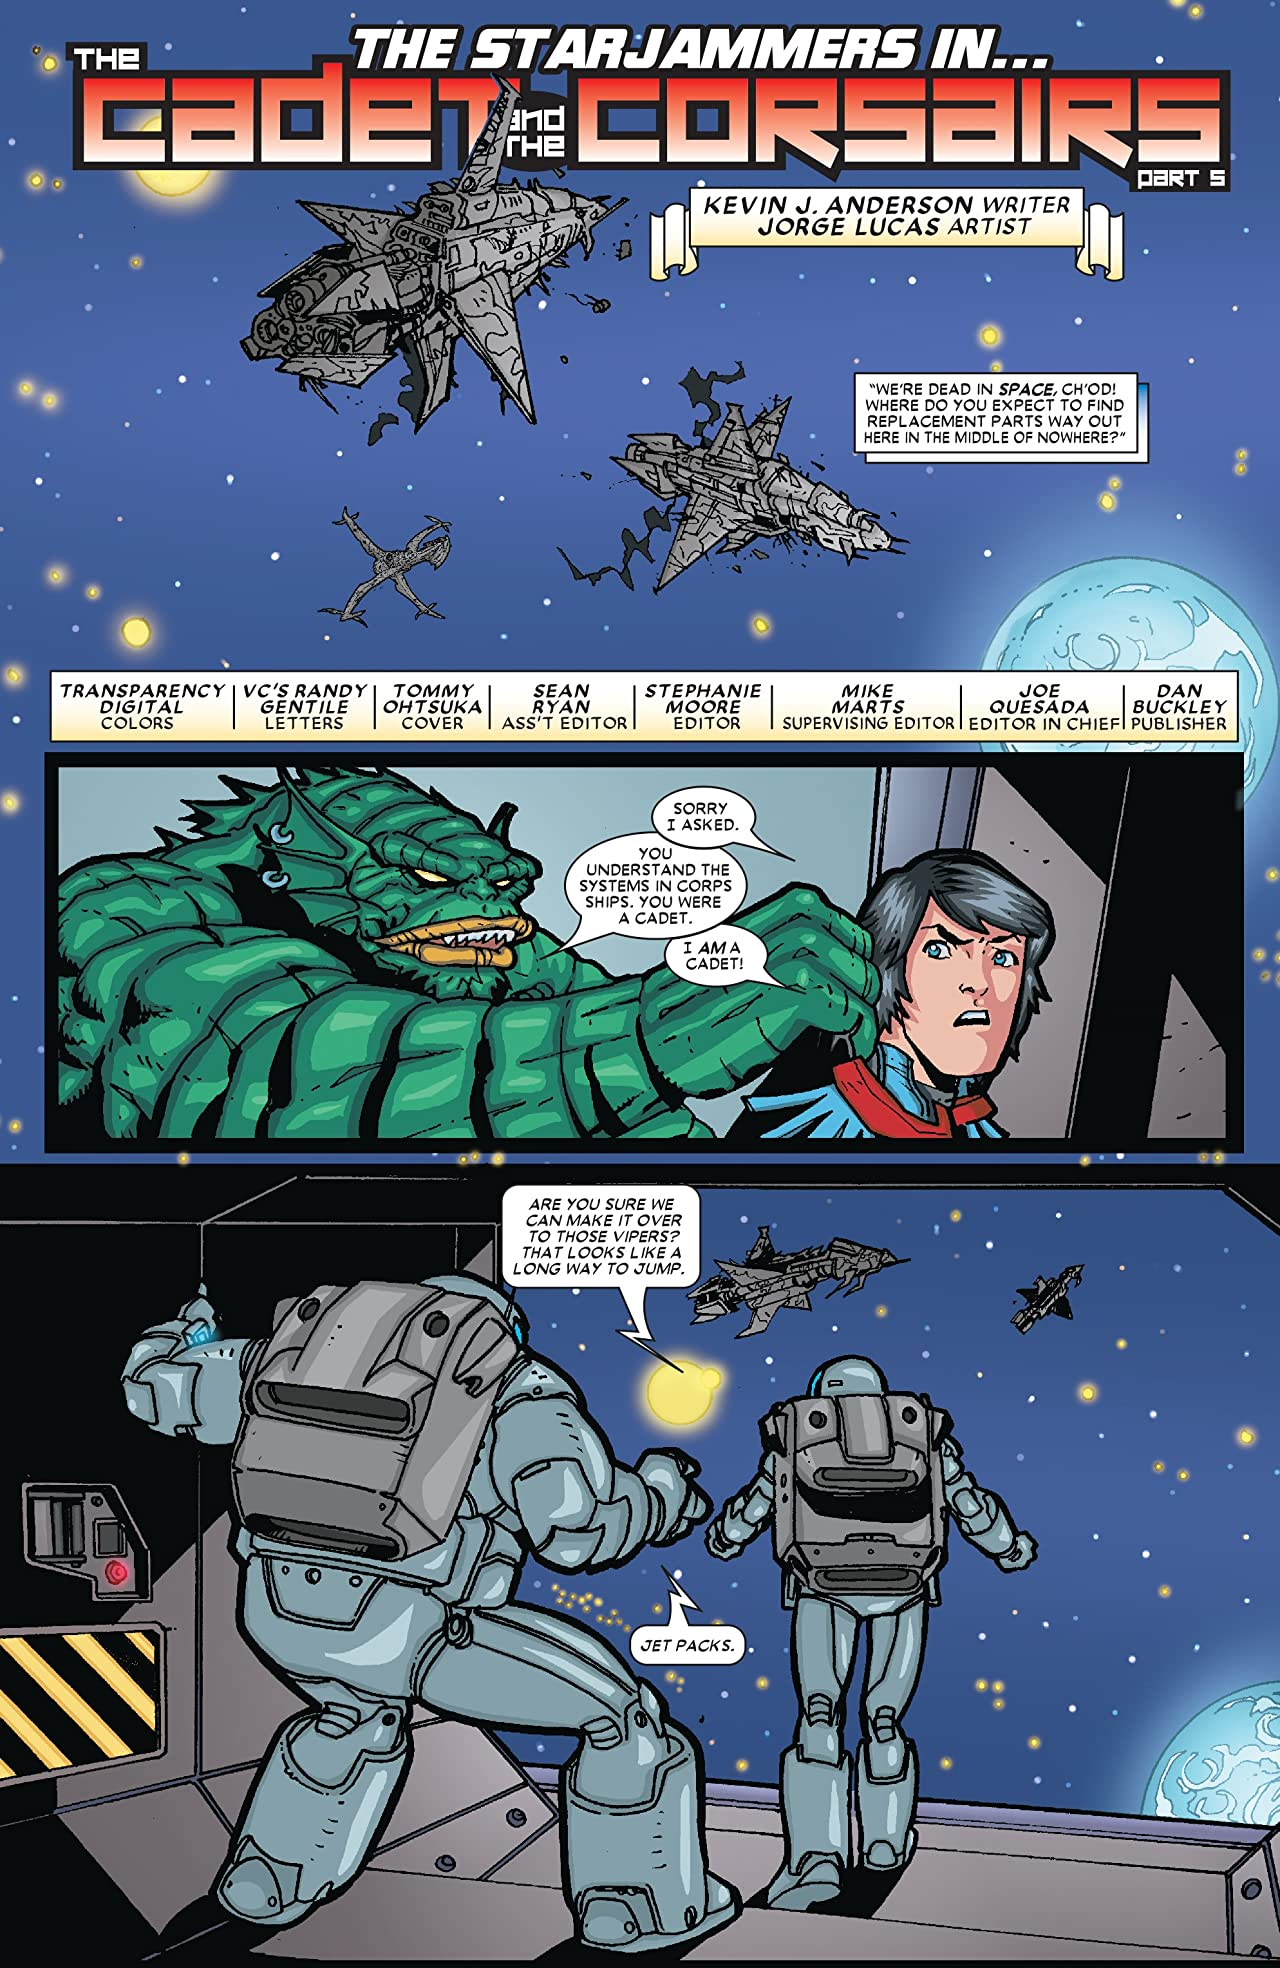 Starjammers (2004) #5 (of 6)